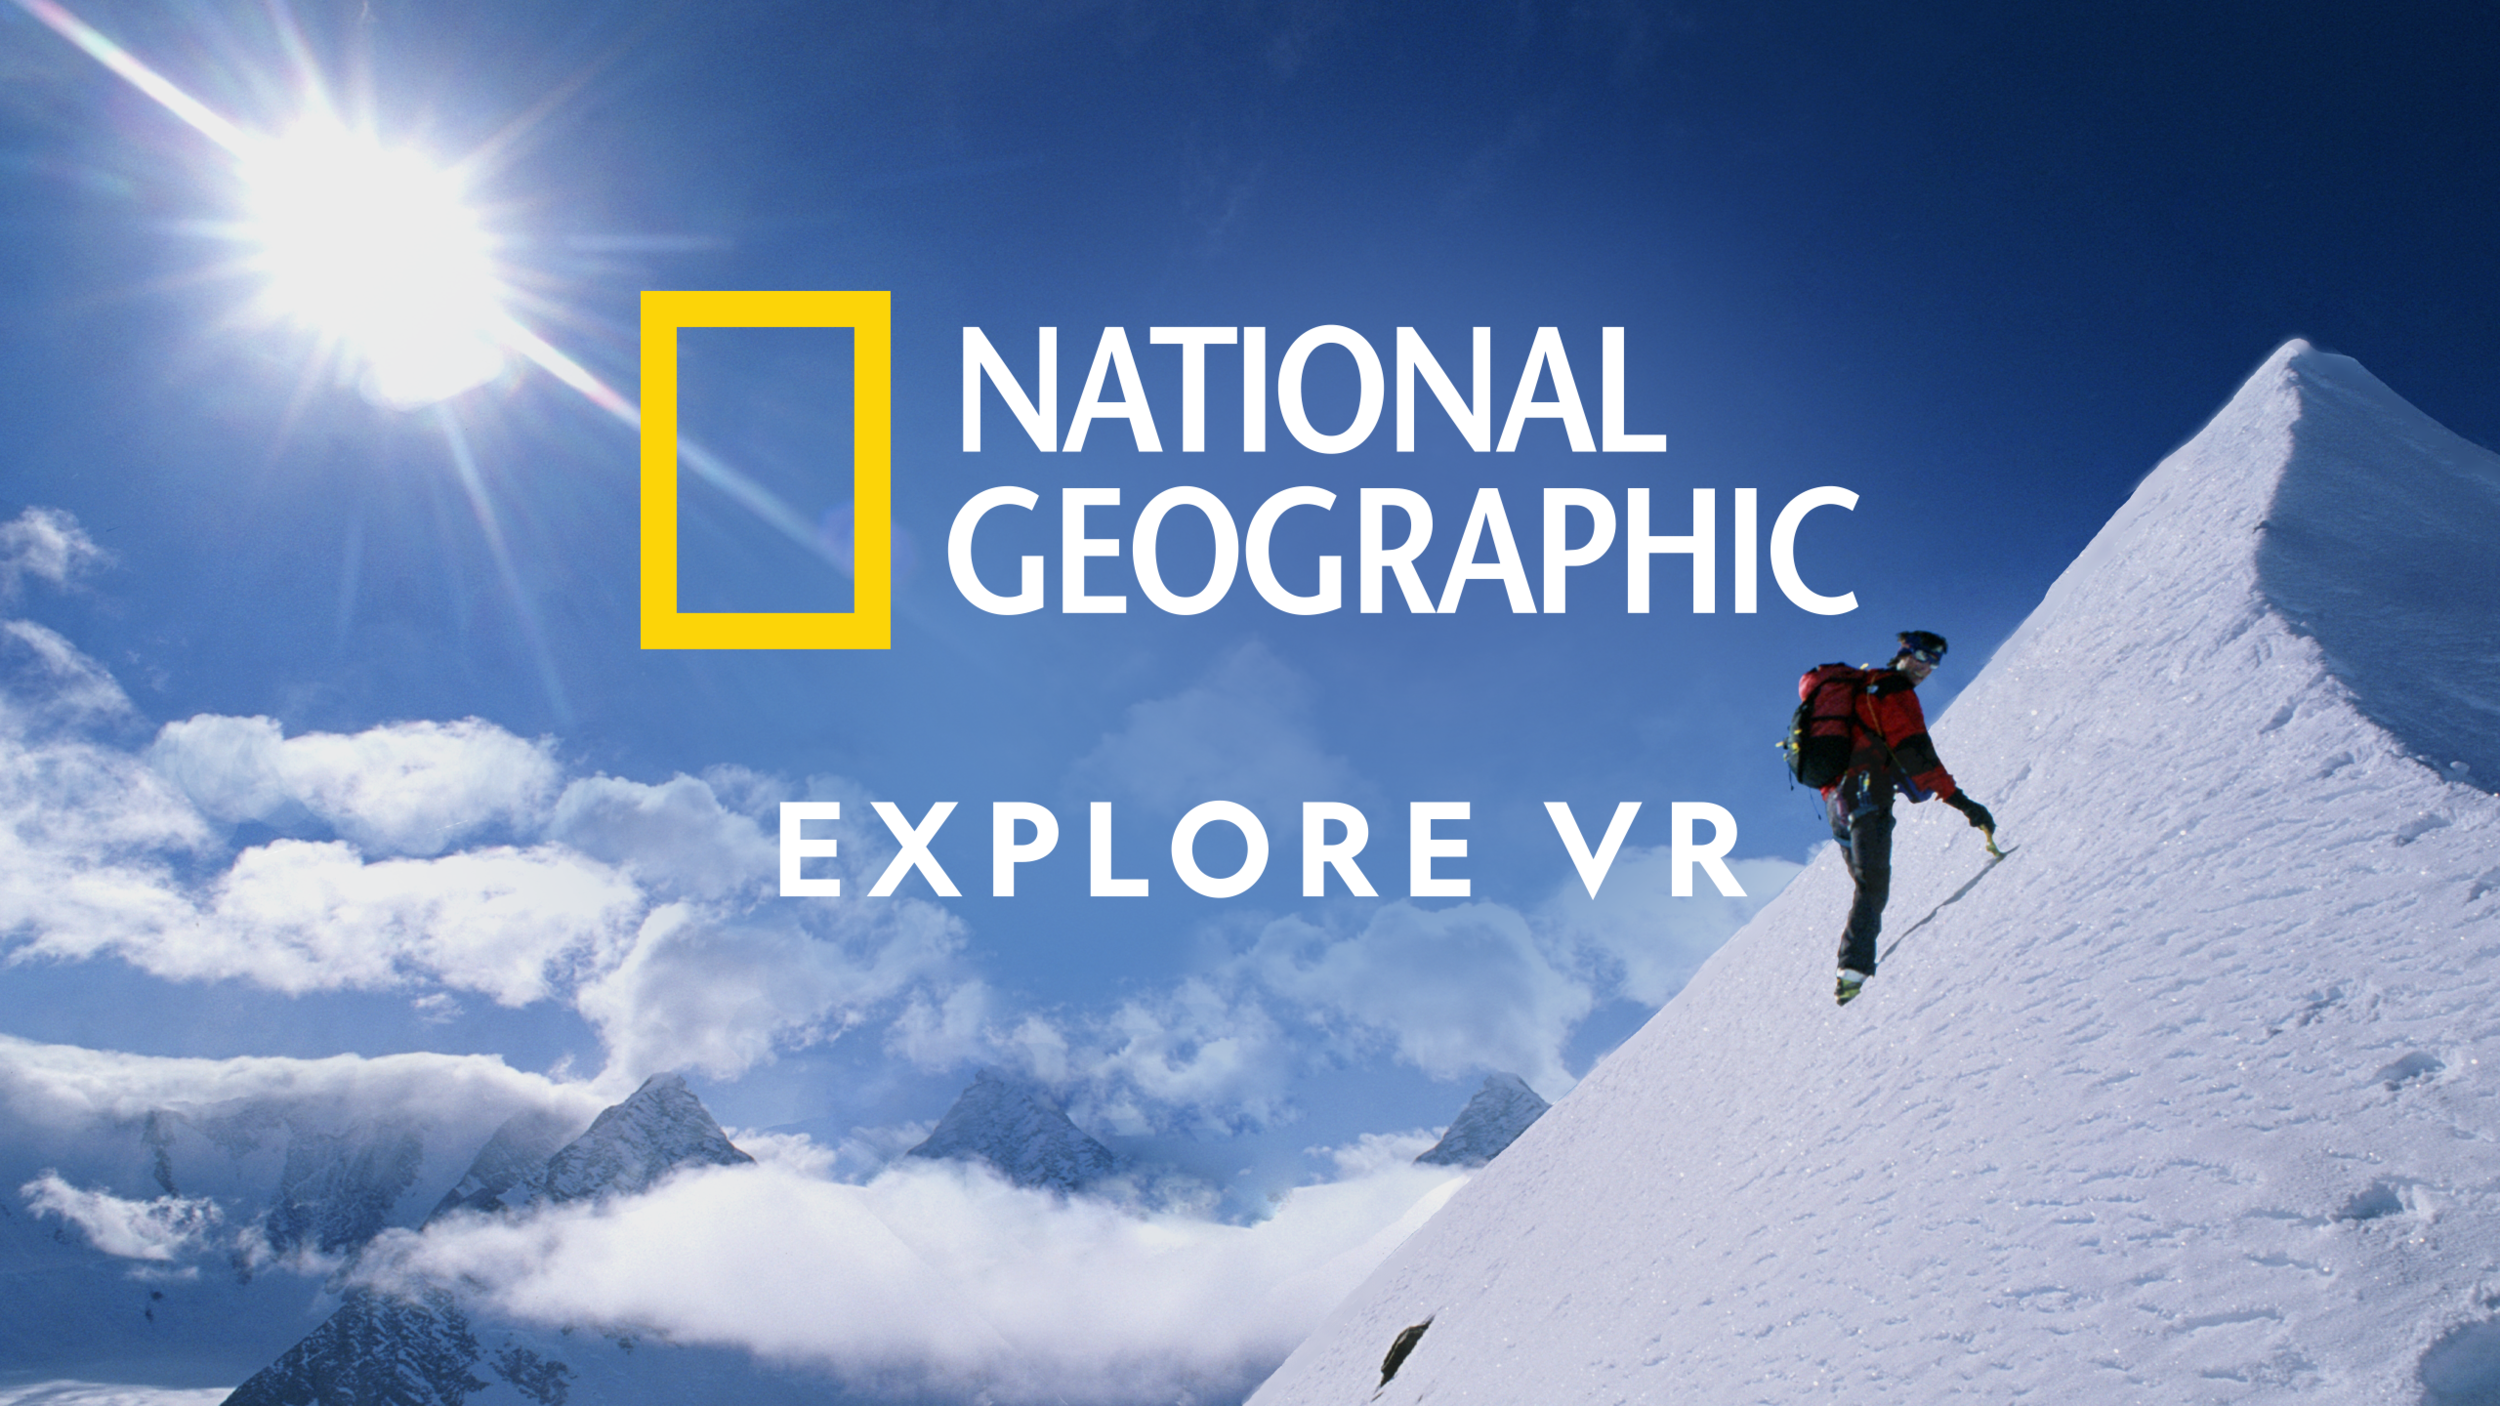 NATIONAL GEOGRAPHIC EXPLORE VR